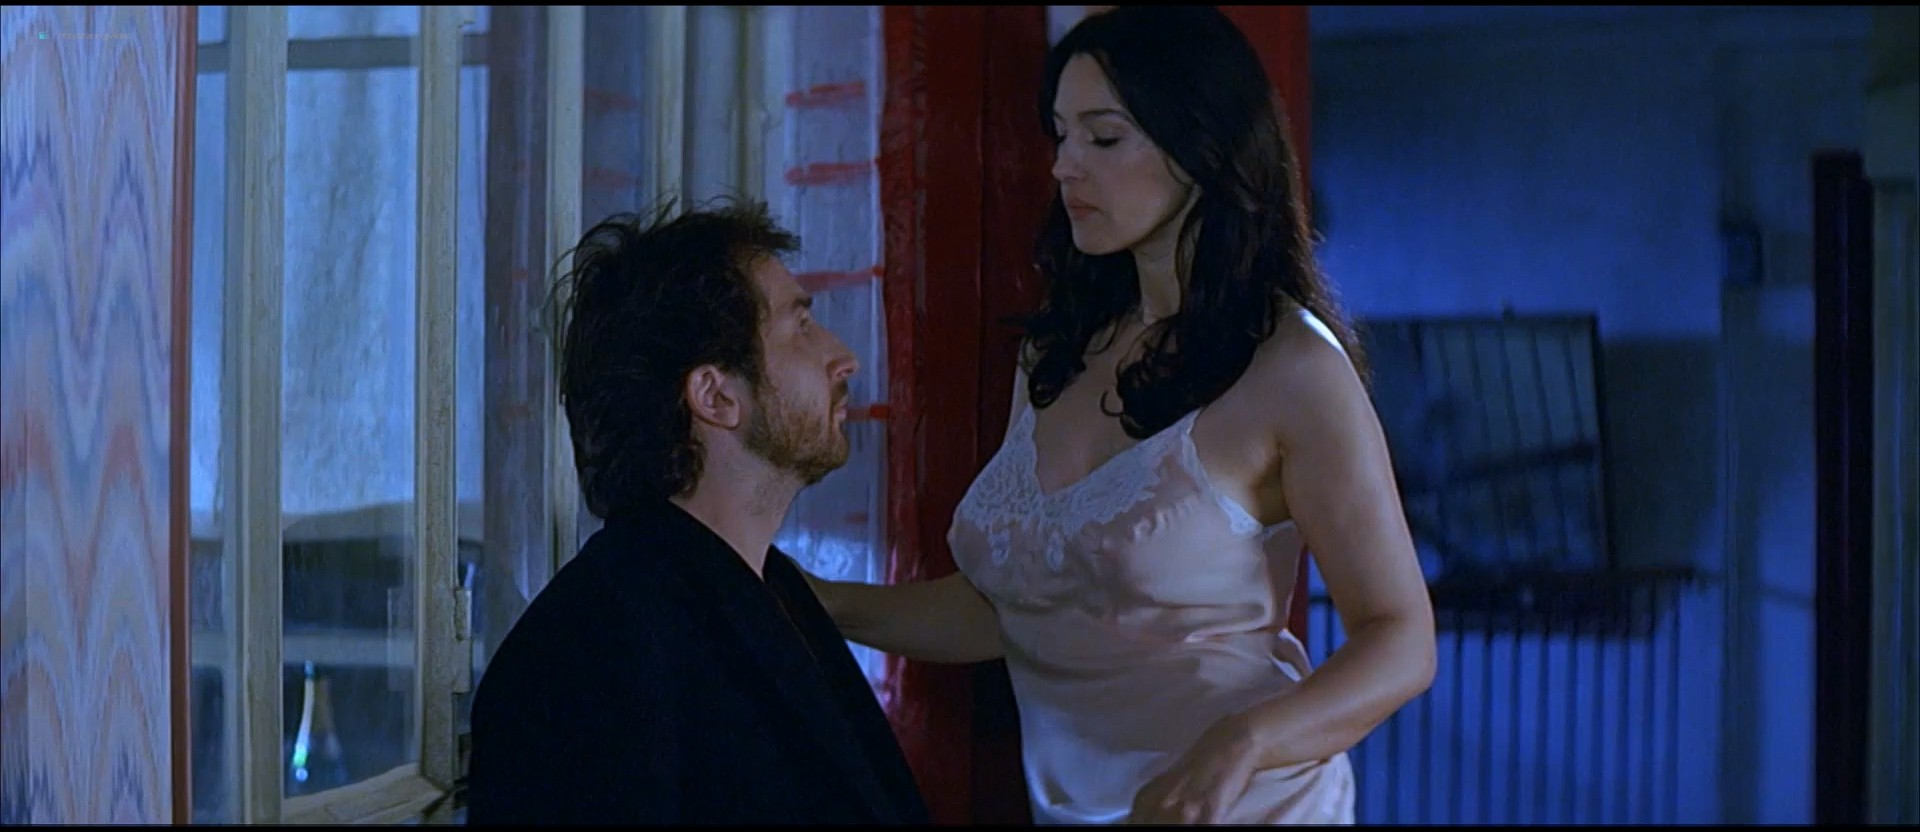 Monica Bellucci nude and sex - Combien tu m'aimes (2005) HD 1080p WEB (3)